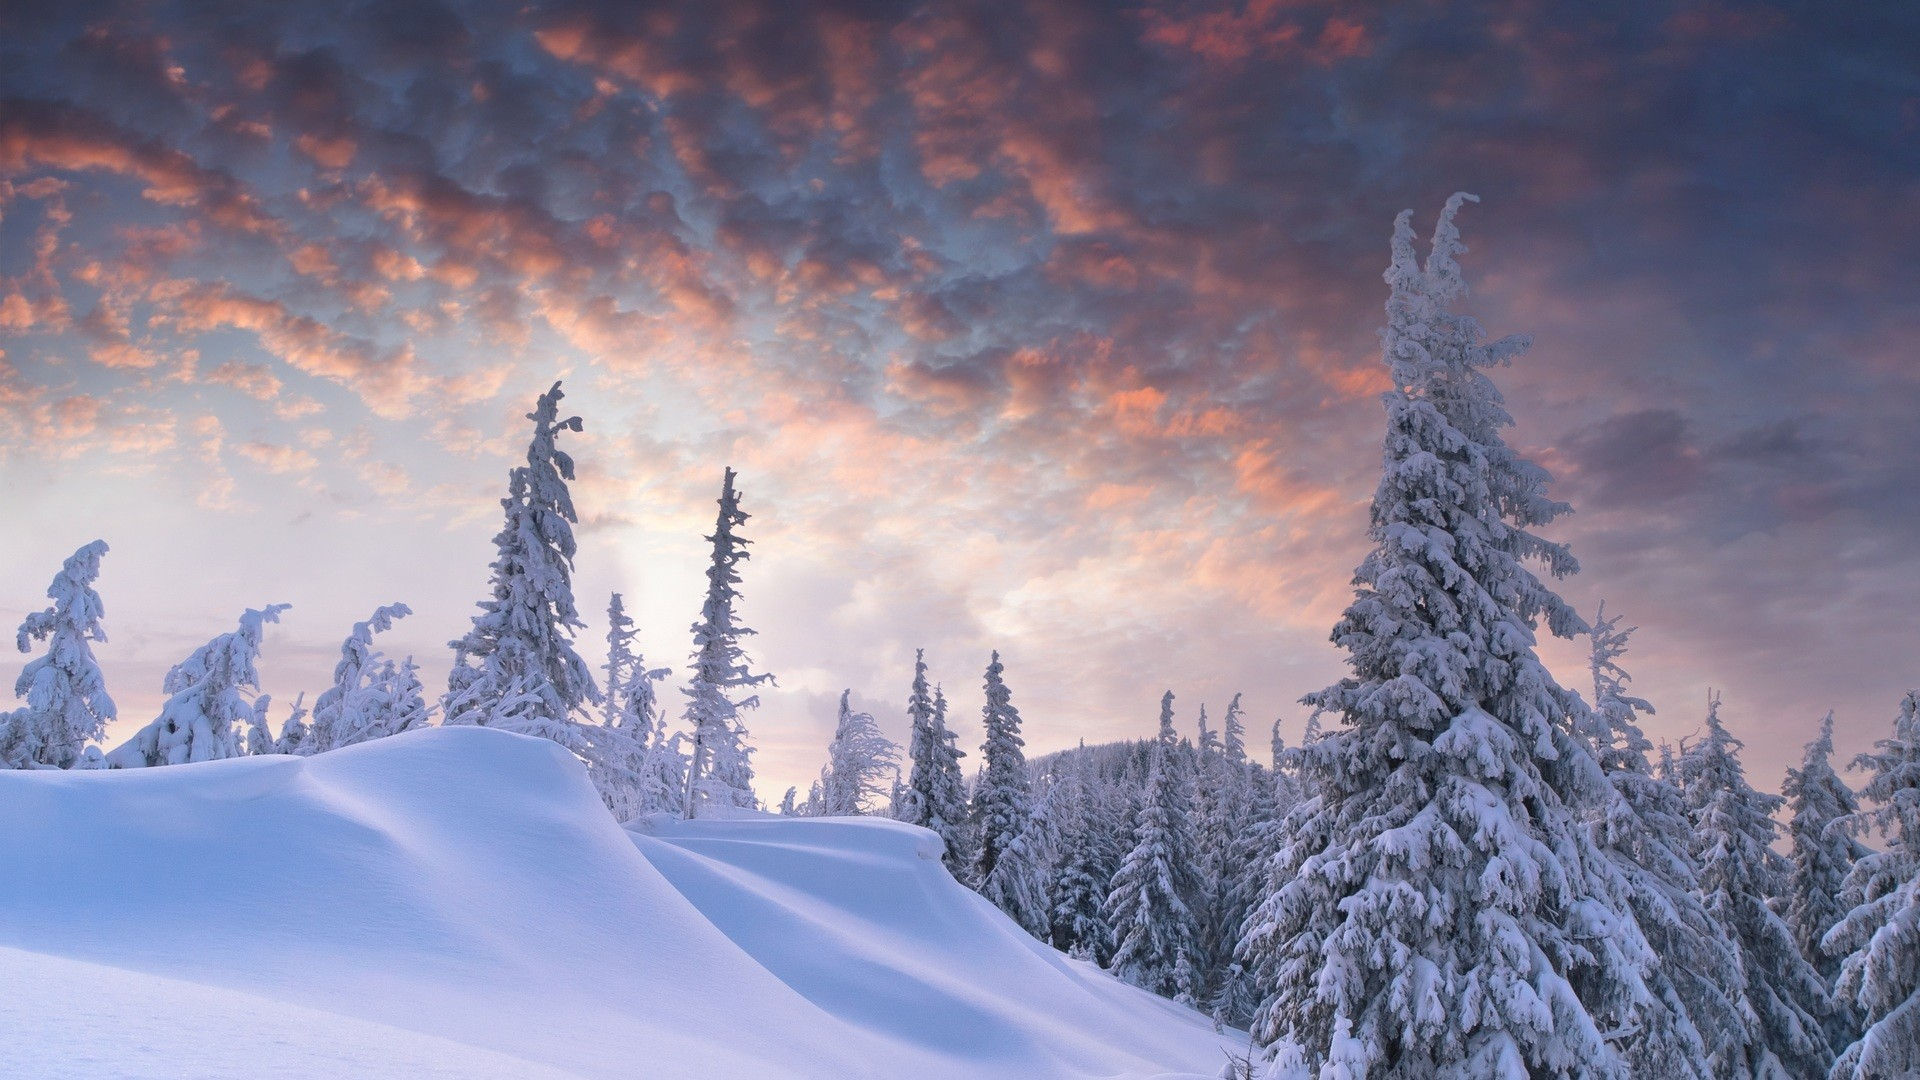 Res: 1920x1080, 229421766 Adorable Desktop Snow Scenes Wallpapers FHDQ,  px